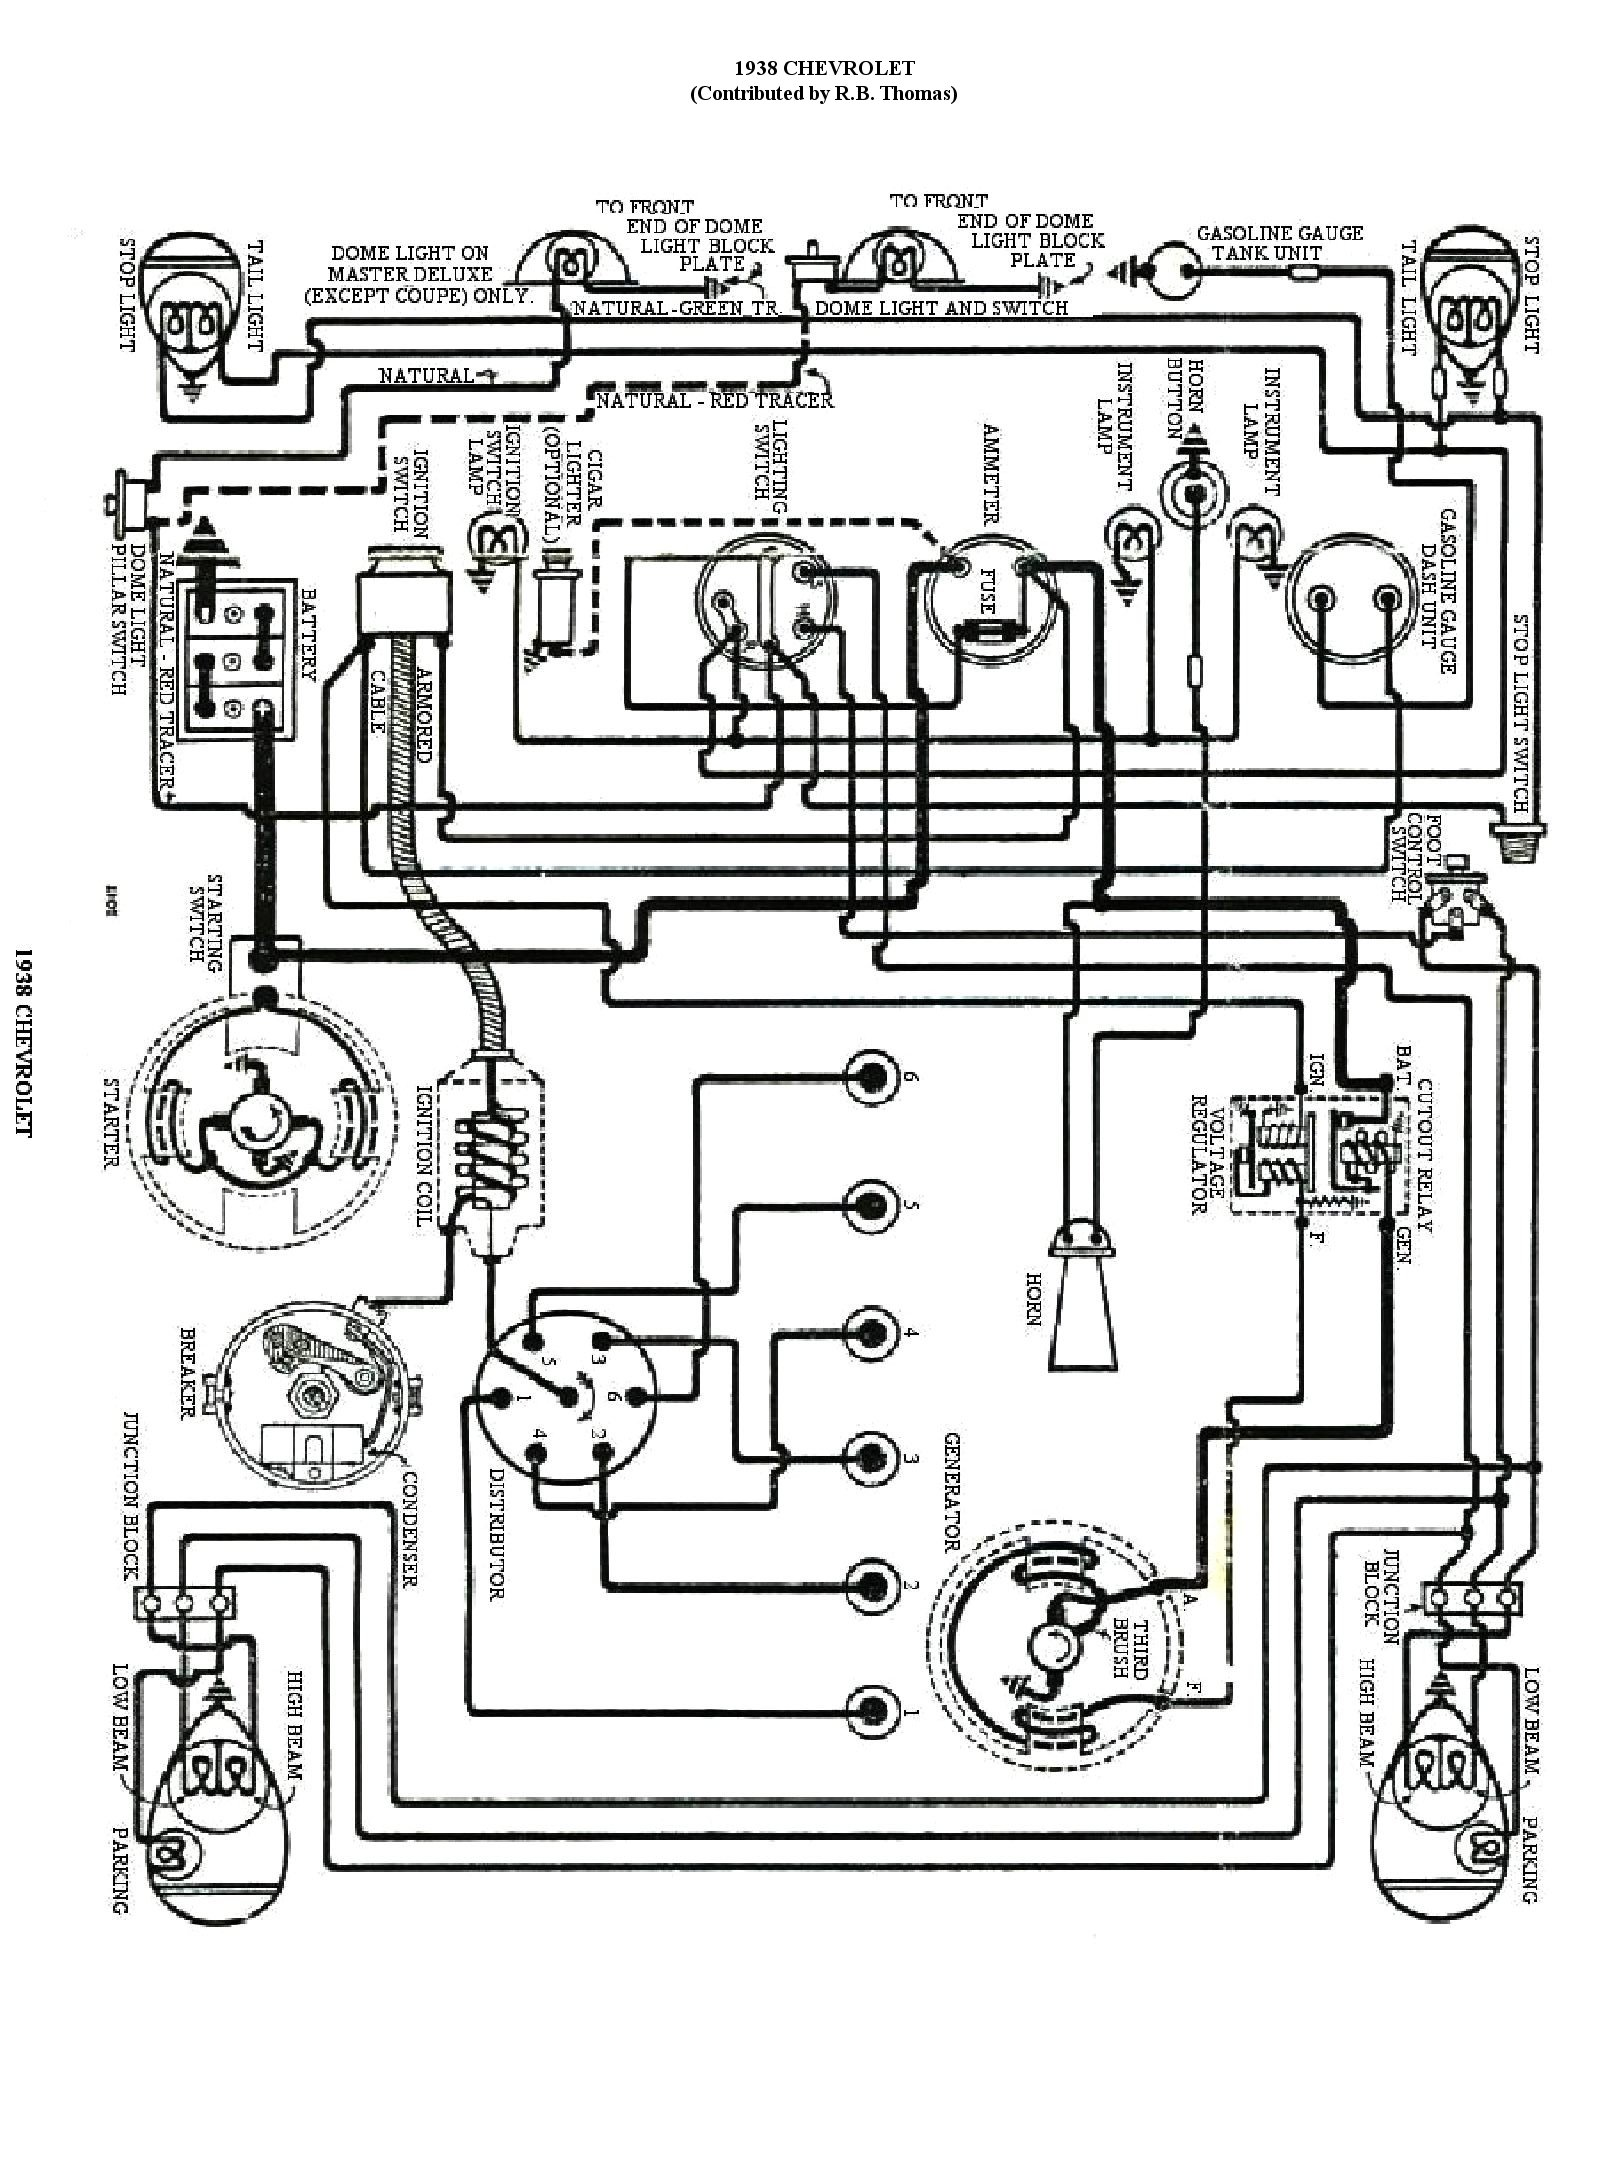 1938 chevy wire diagram